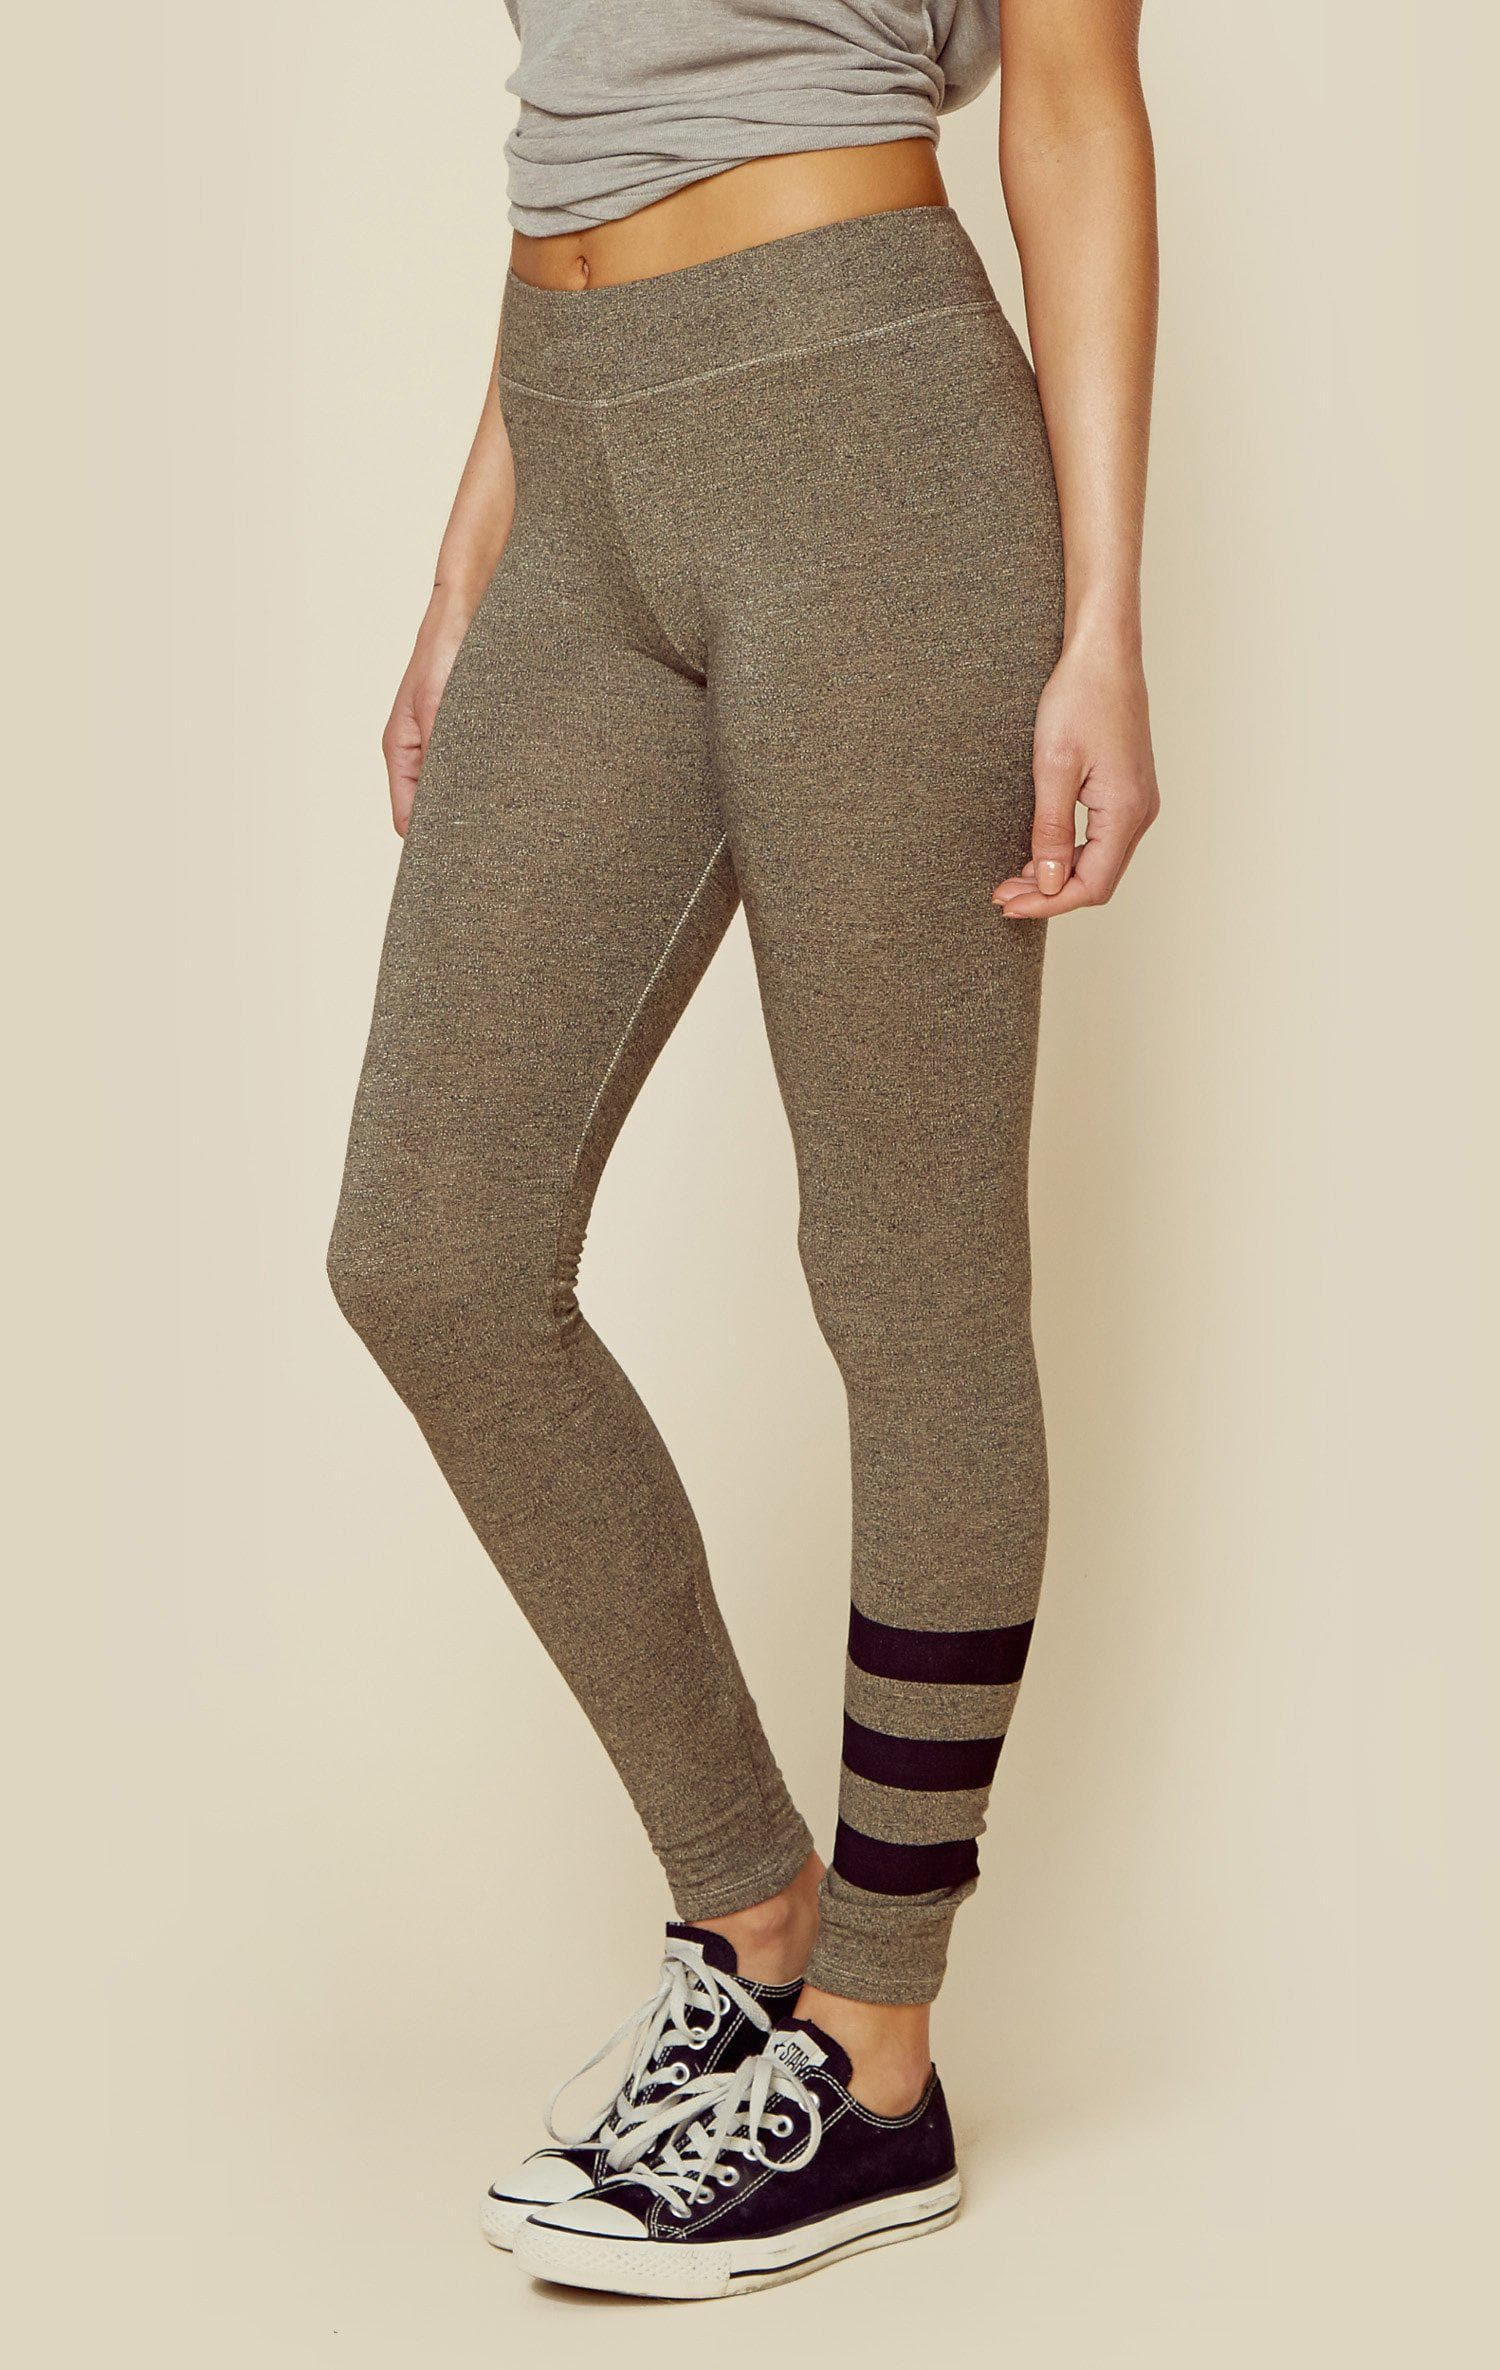 SUNDRY STRIPES YOGA PANT - H.GREY